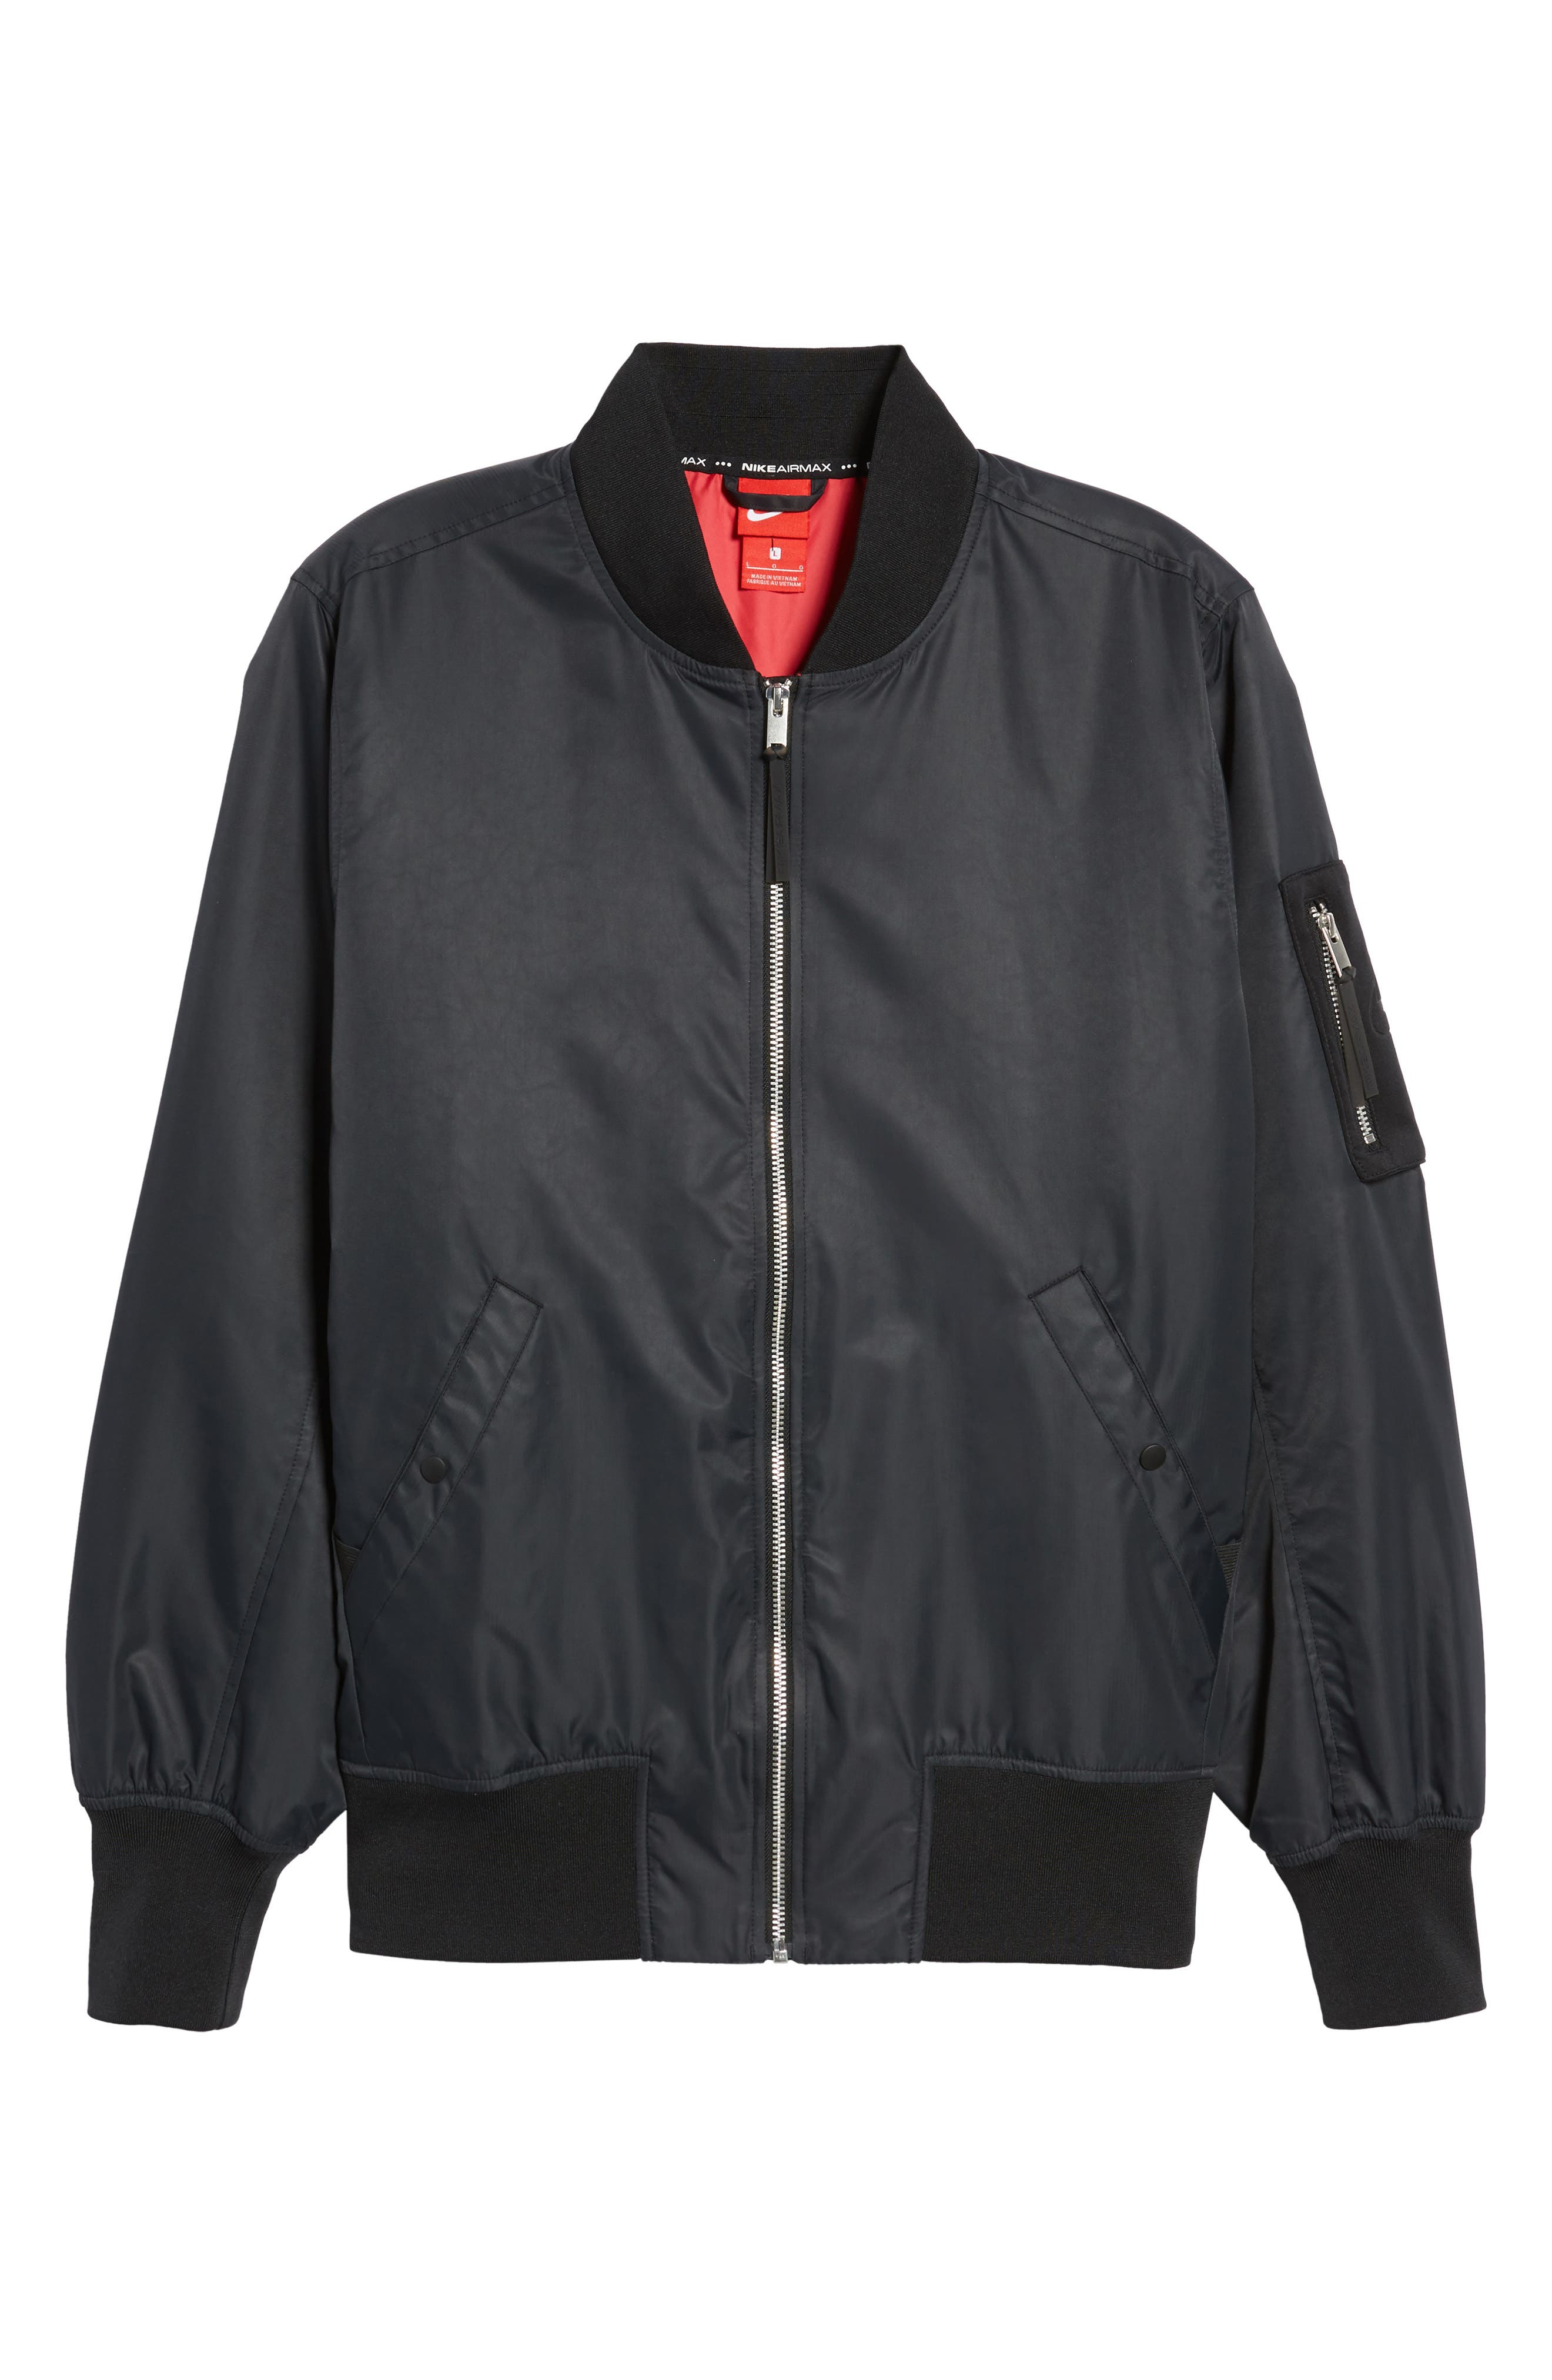 NSW Air Max Woven Bomber Jacket,                             Alternate thumbnail 5, color,                             010